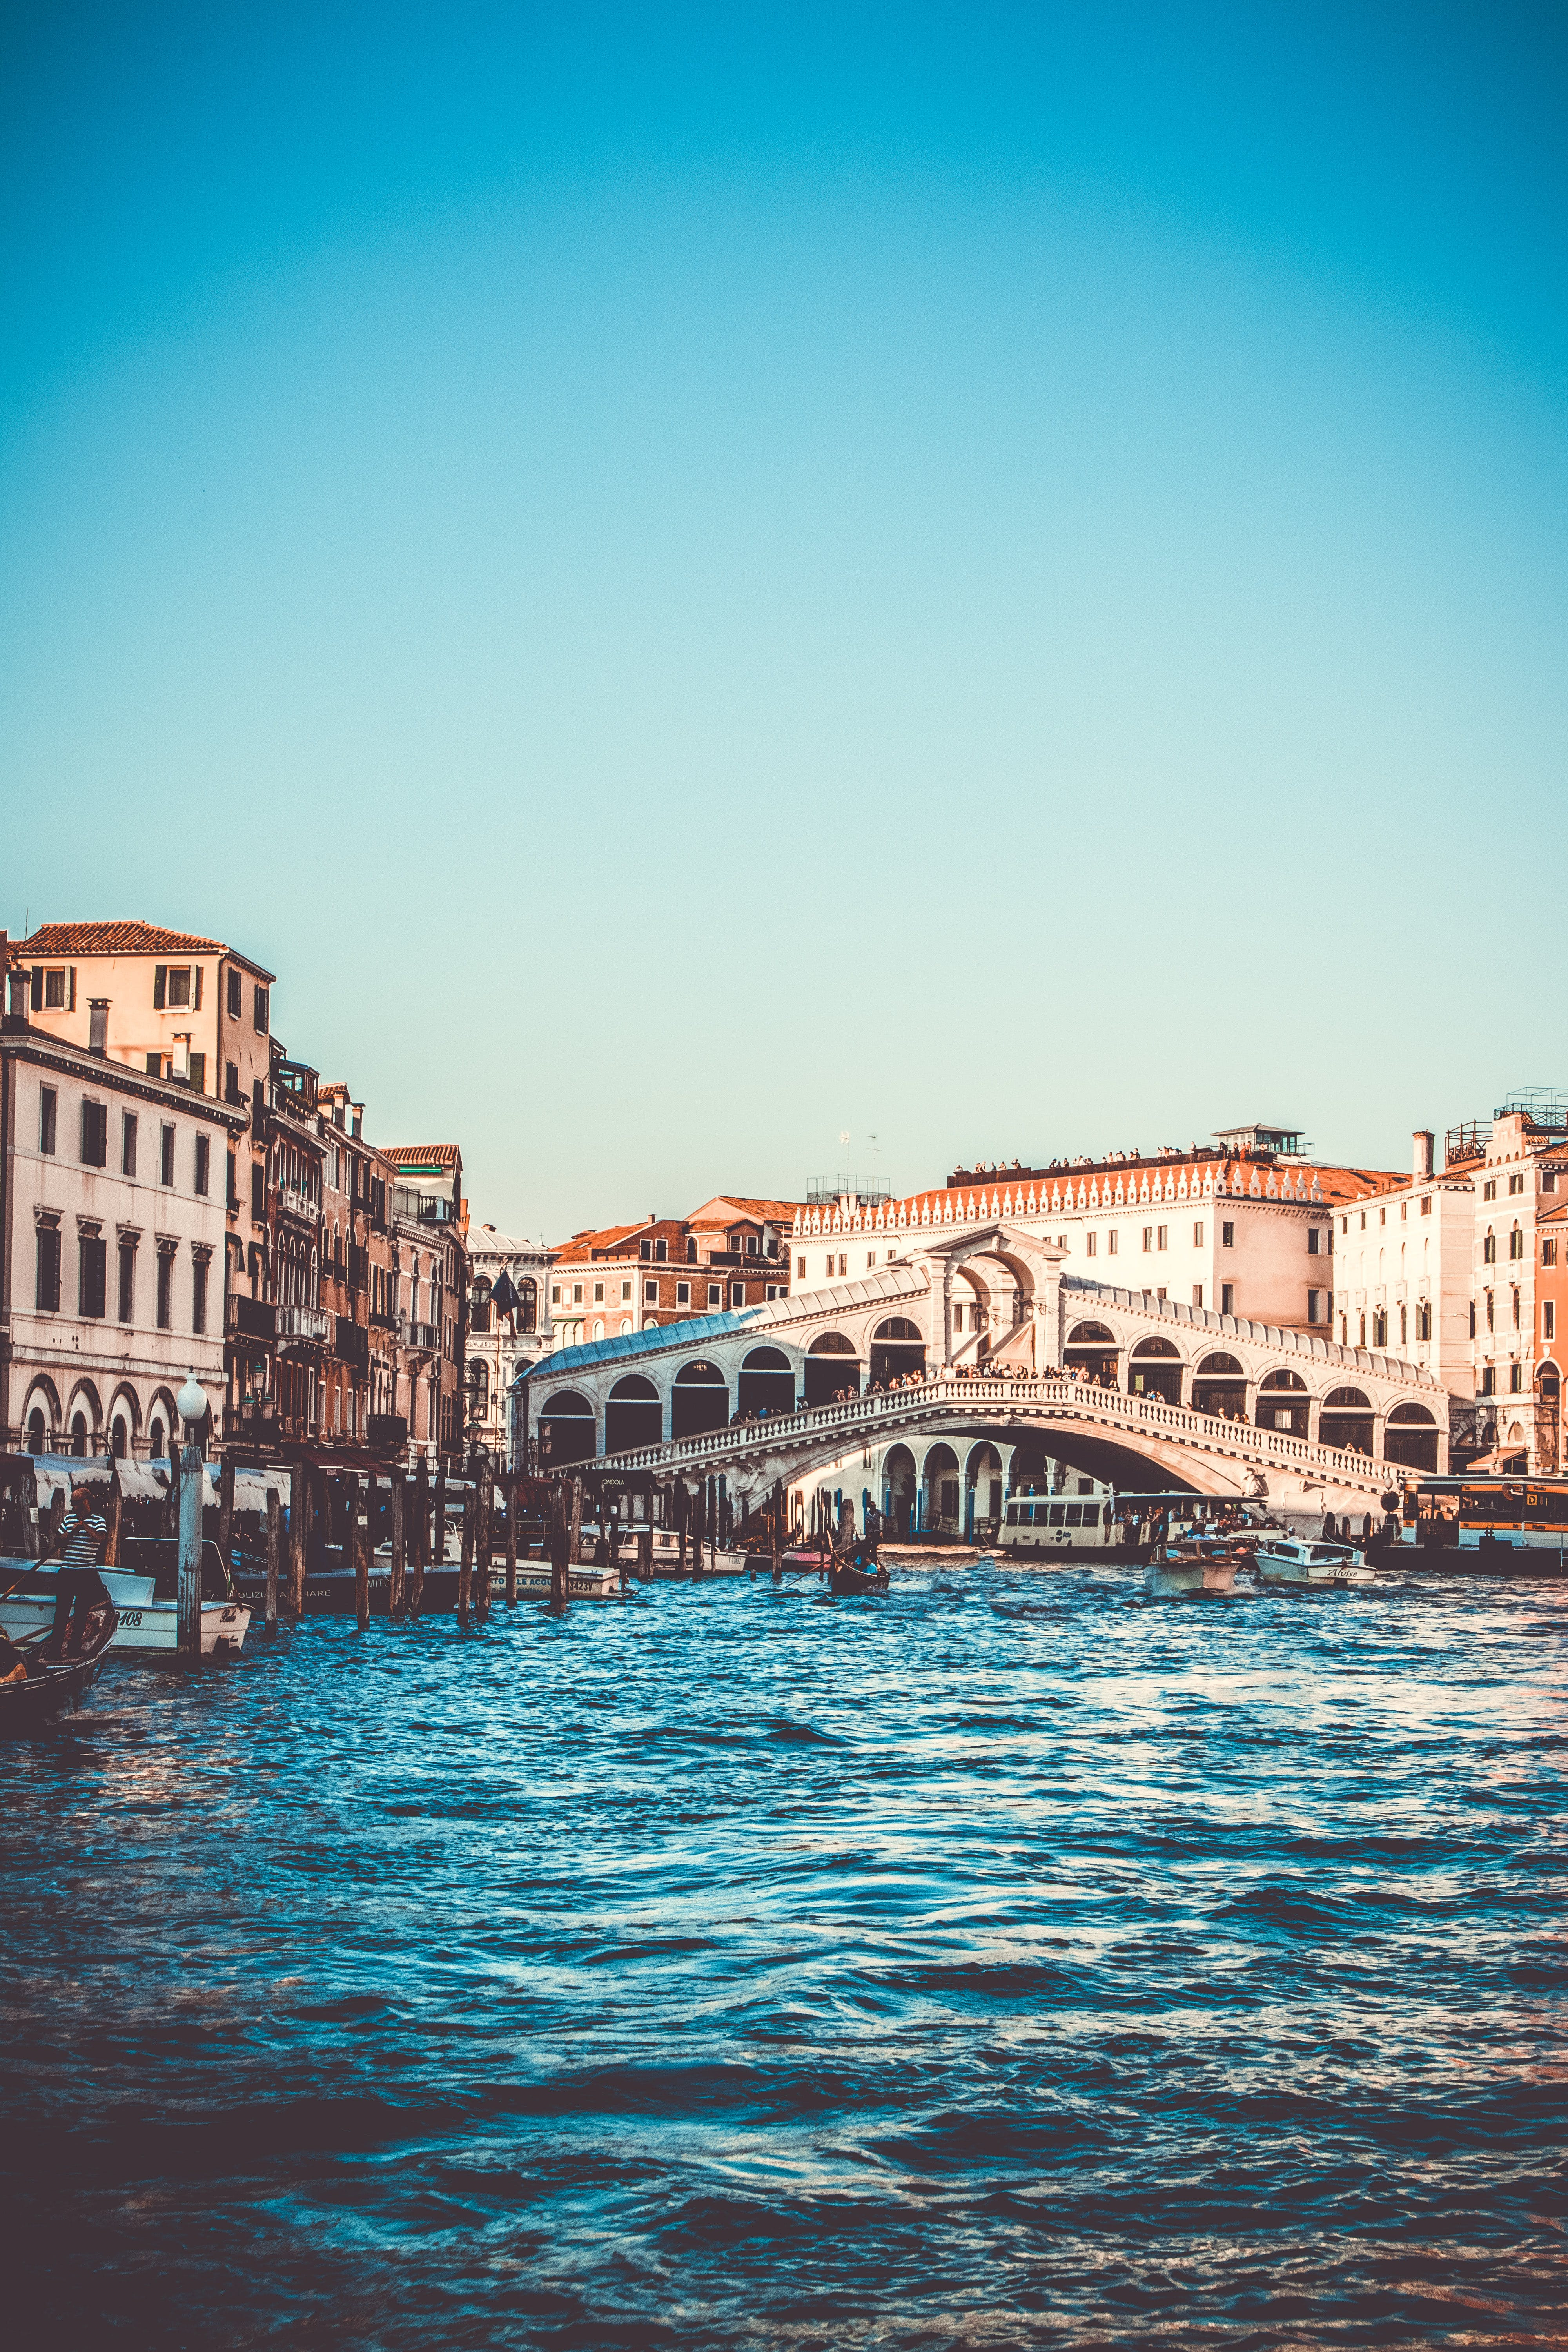 Rialto Bridge, Spain